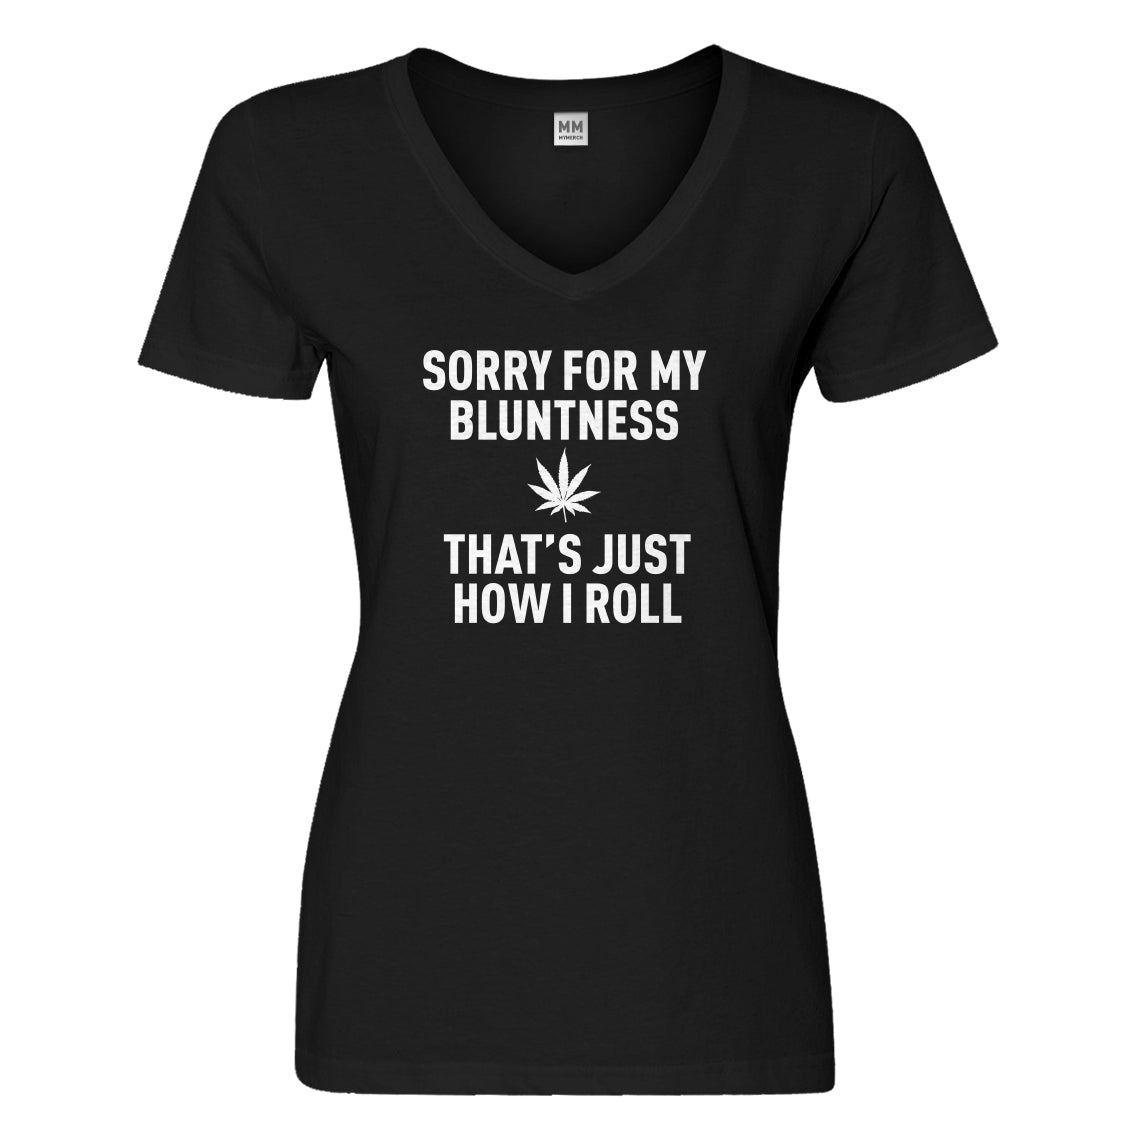 Womens Sorry for my Bluntness Vneck T-shirt